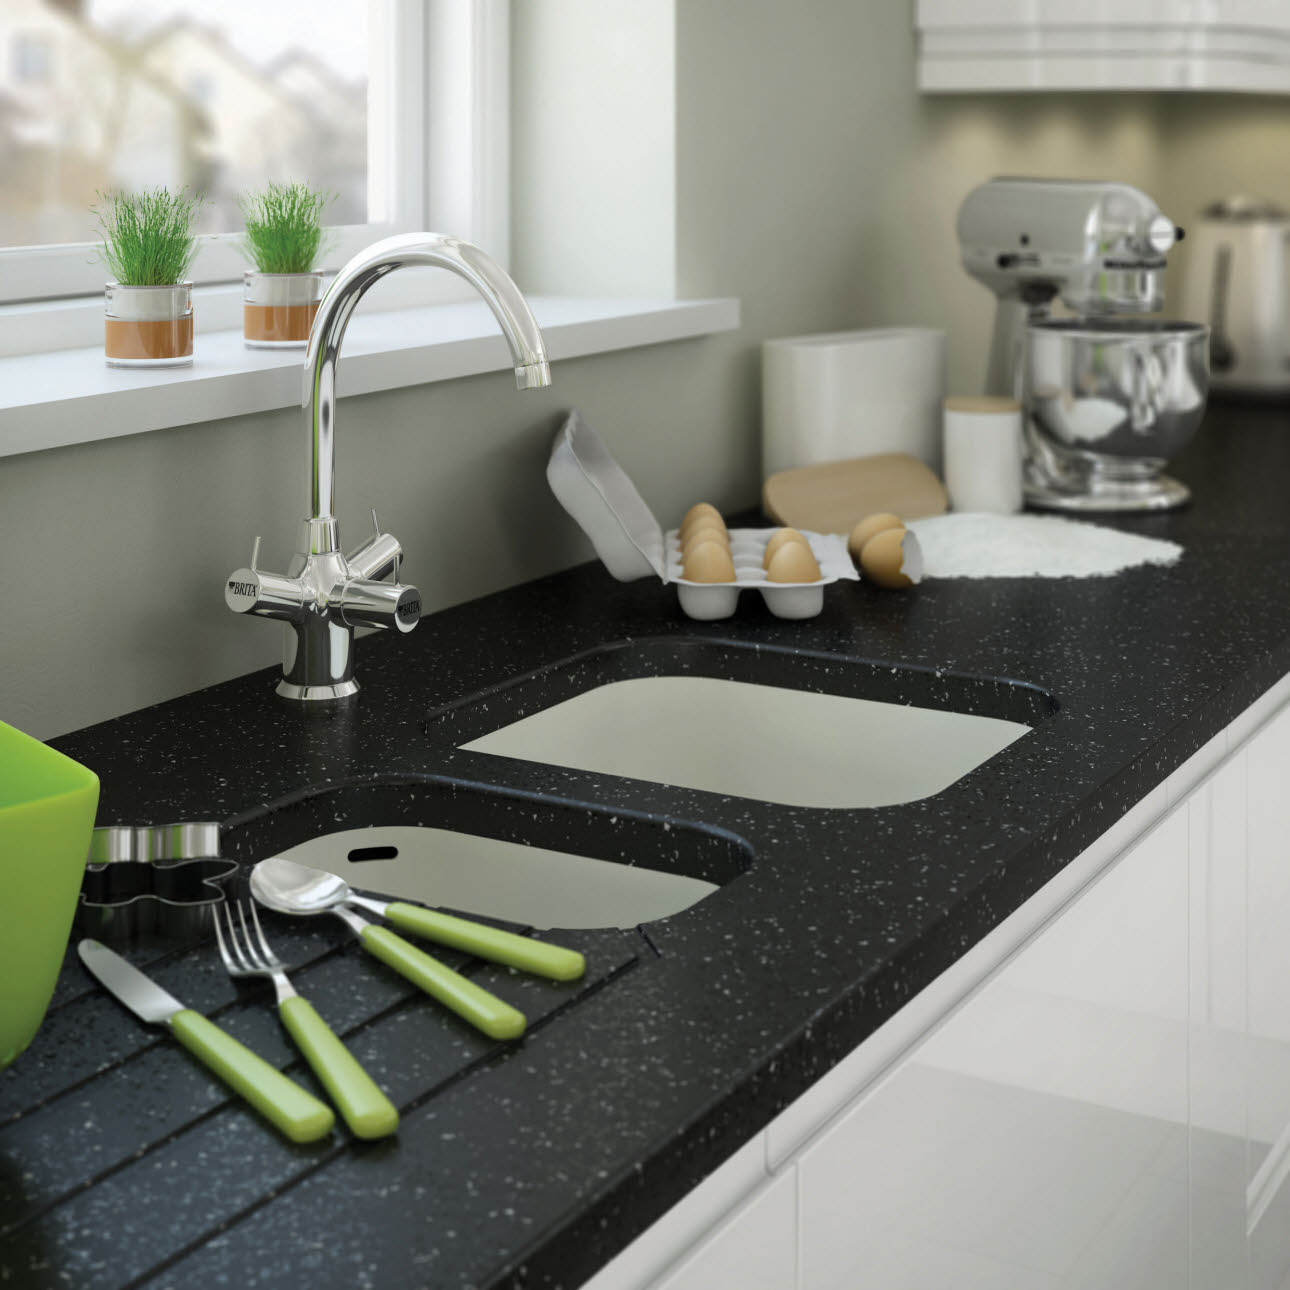 Close up of sink built into granite worktop and white kitchen unit, with cutlery